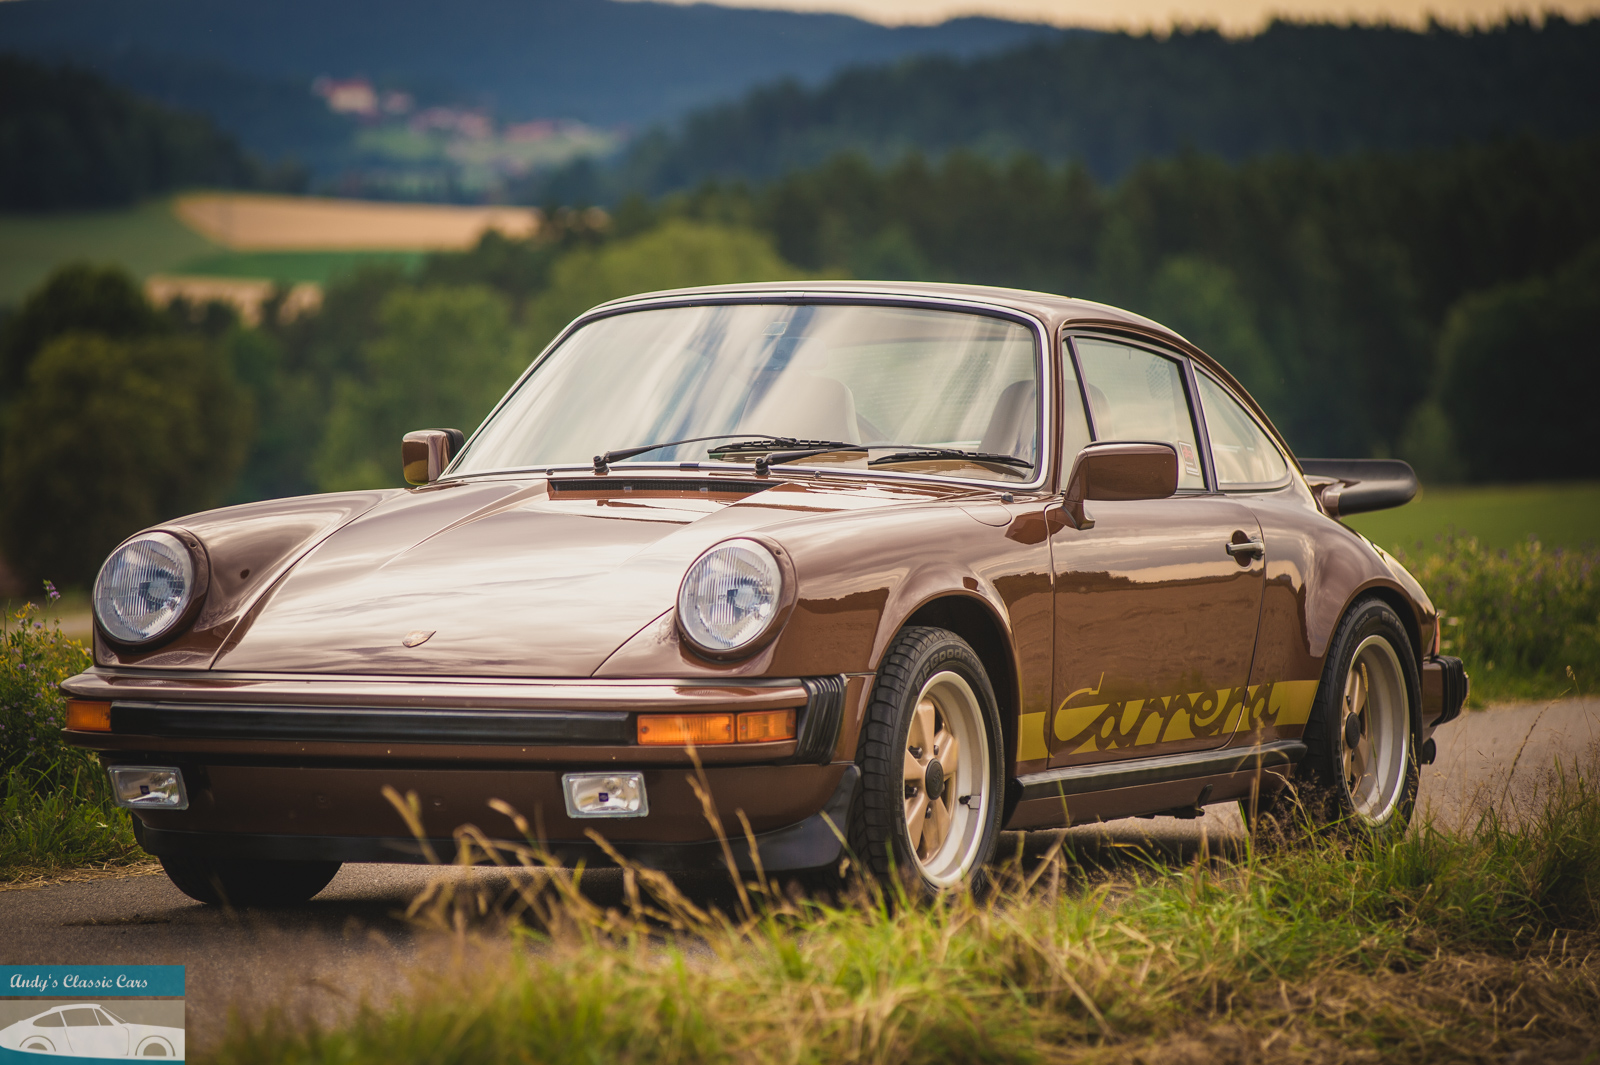 Porsche US-Carrera Coupe